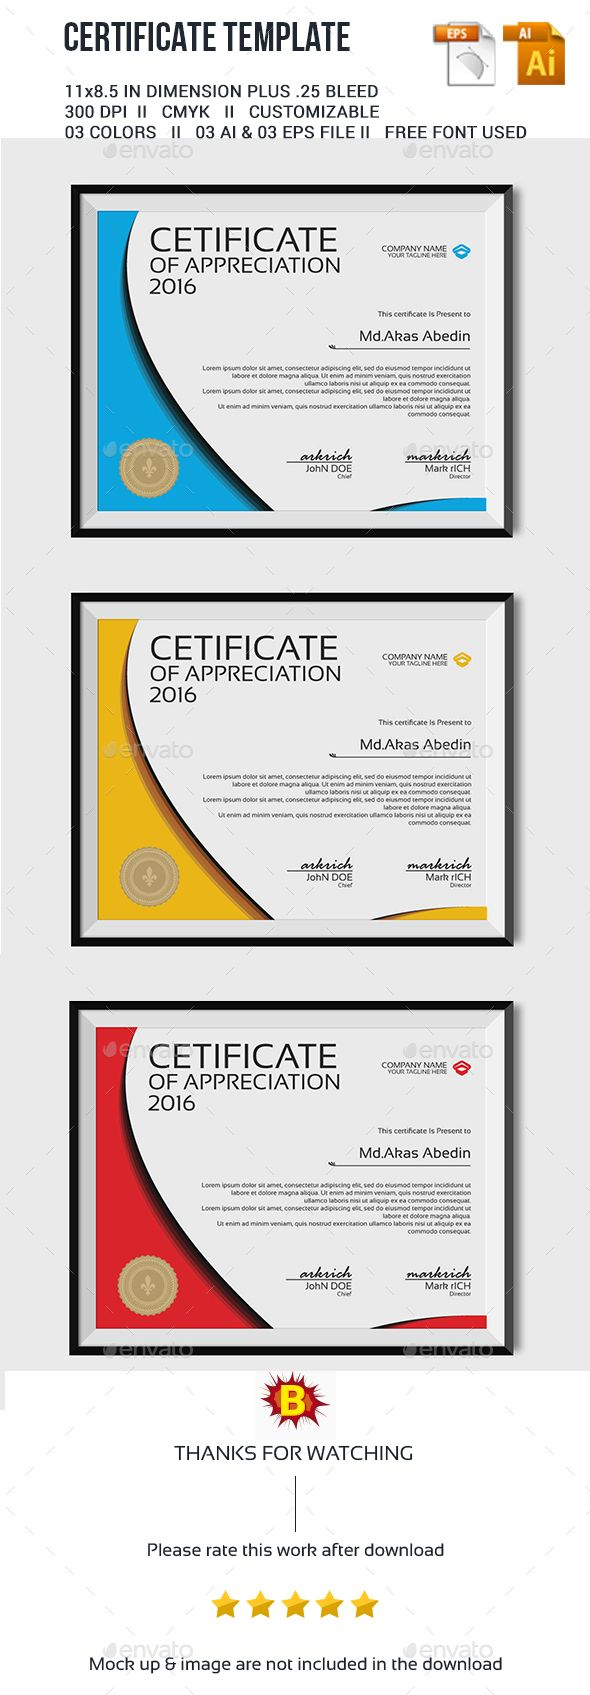 103 best certificate images on pinterest certificate templates certificate template 1betcityfo Gallery